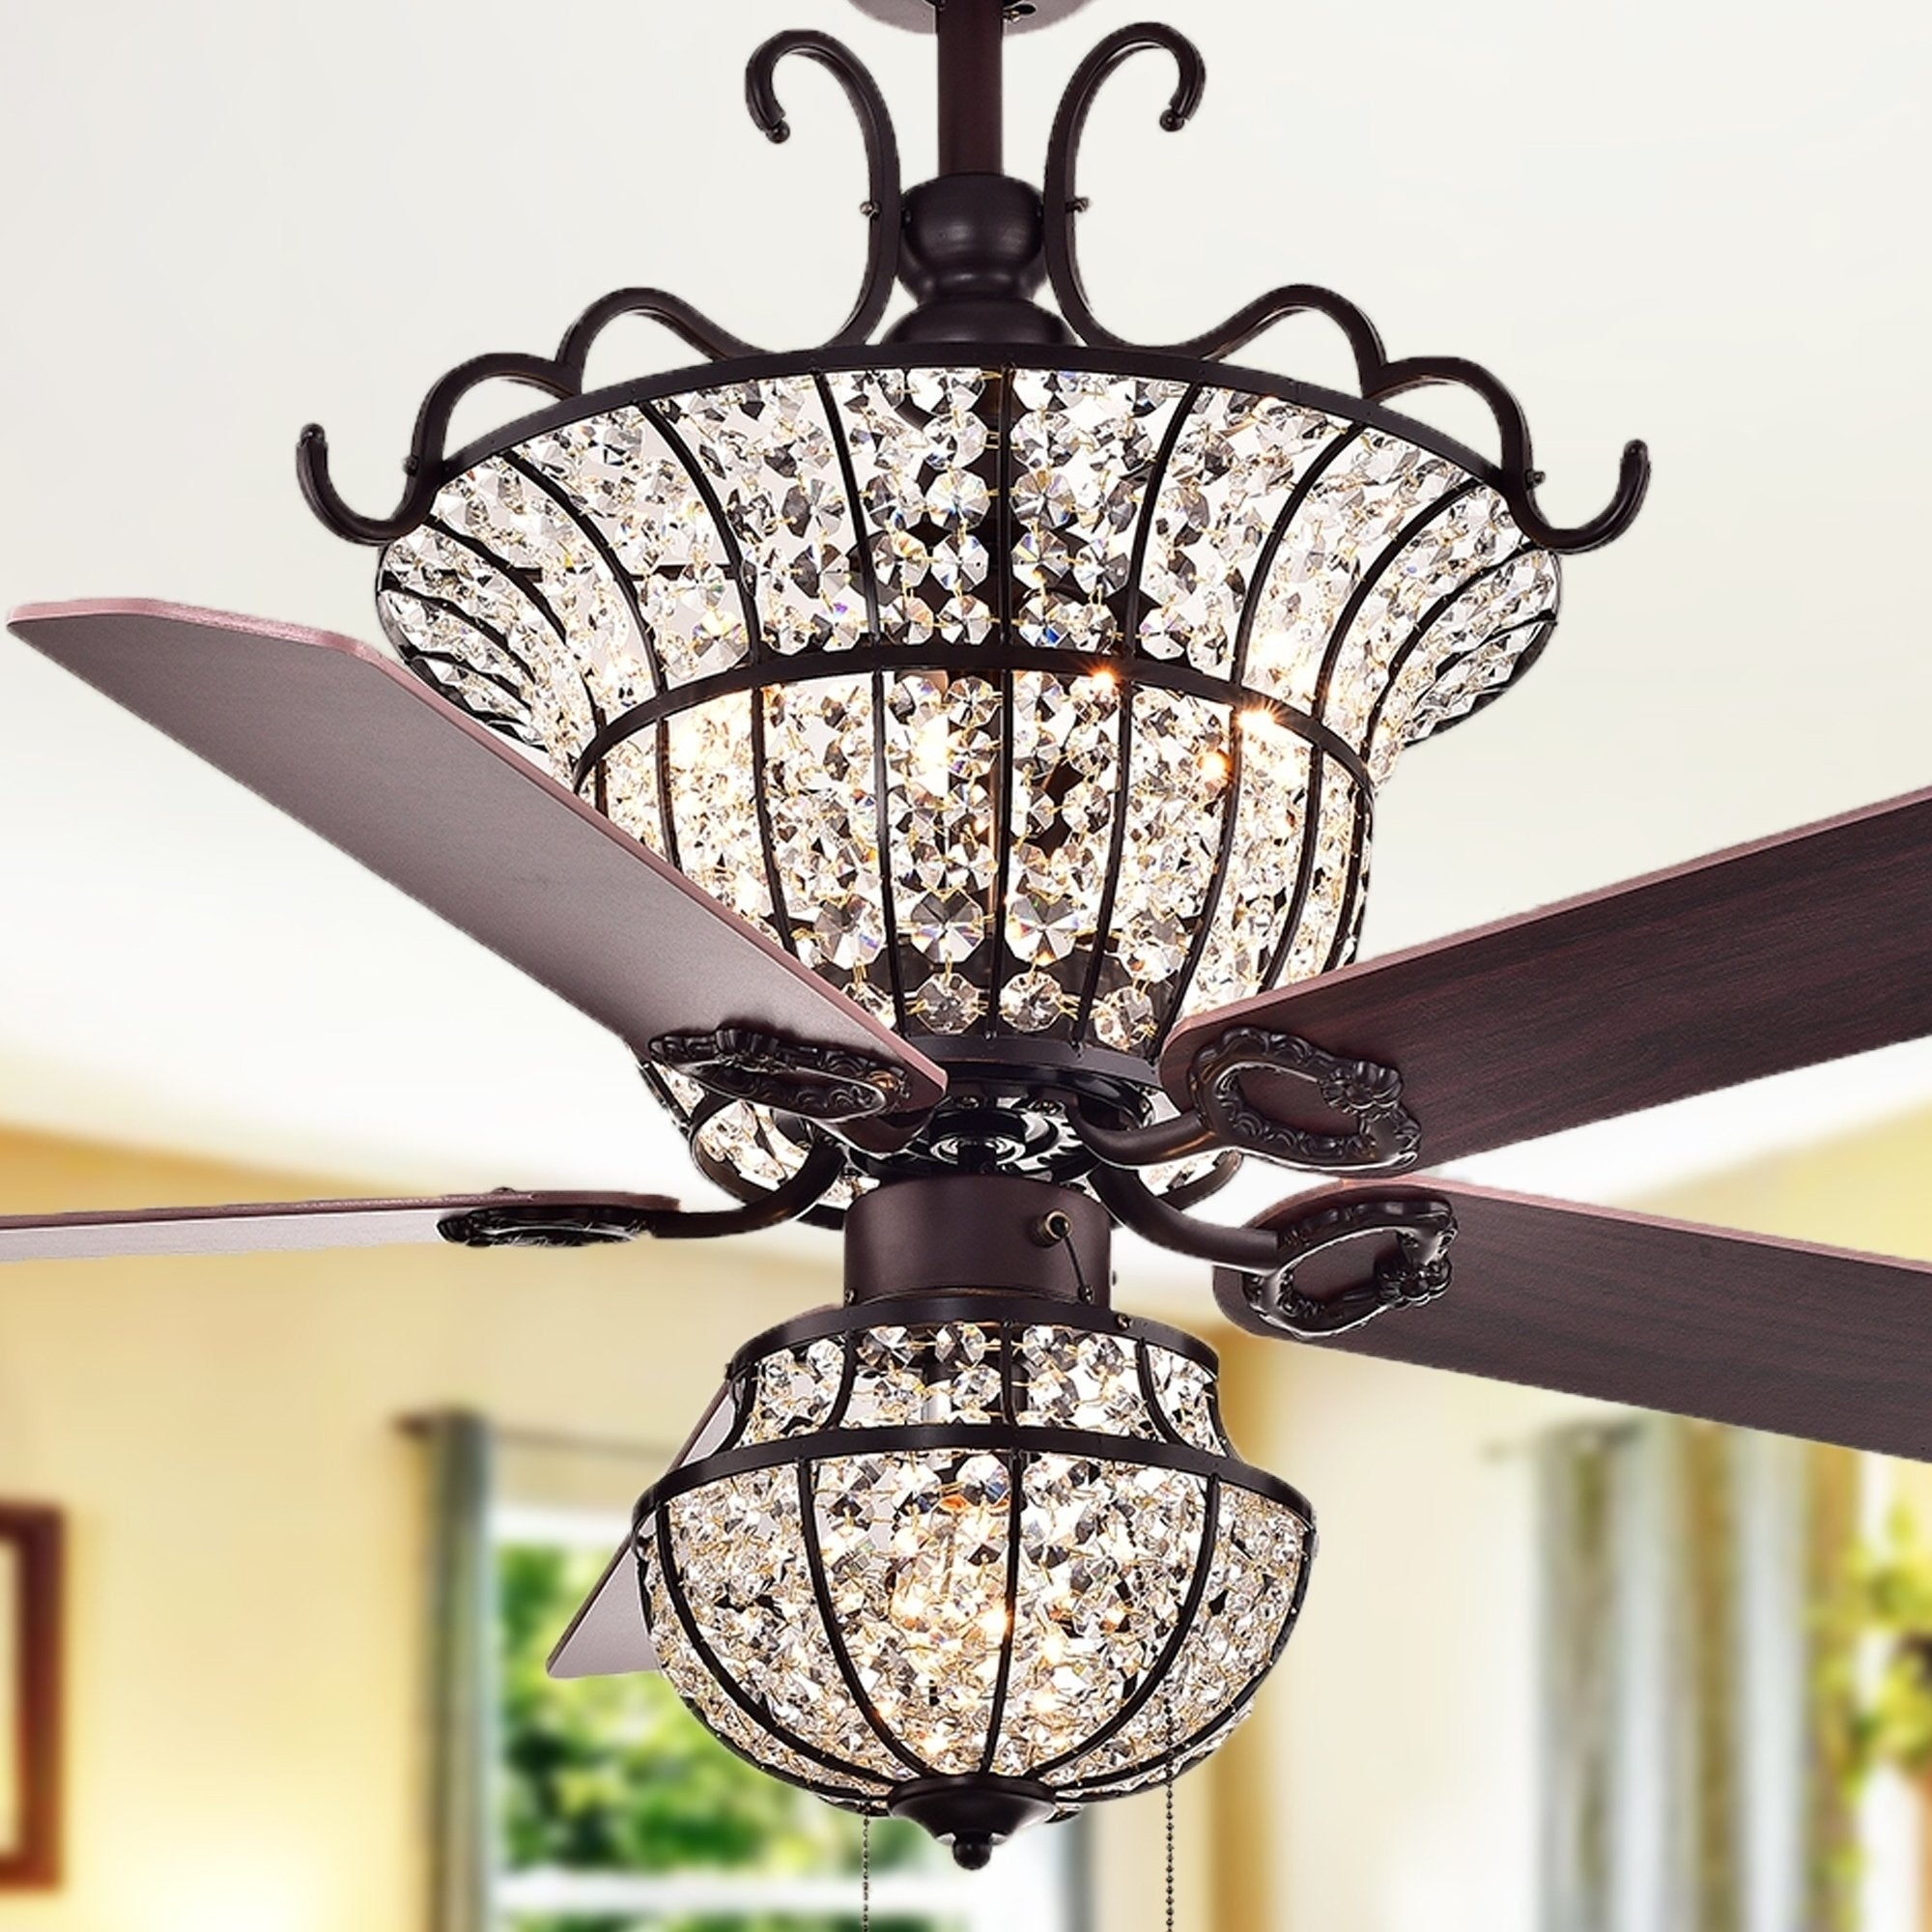 52inch Industrial Ceiling Fan Light Indoor Fan Chandelier With Pull Chain Remote Control 3 Speed Ceiling Fan With 5 Reversible Blade Black Iron Cage Ceiling Fan Lights